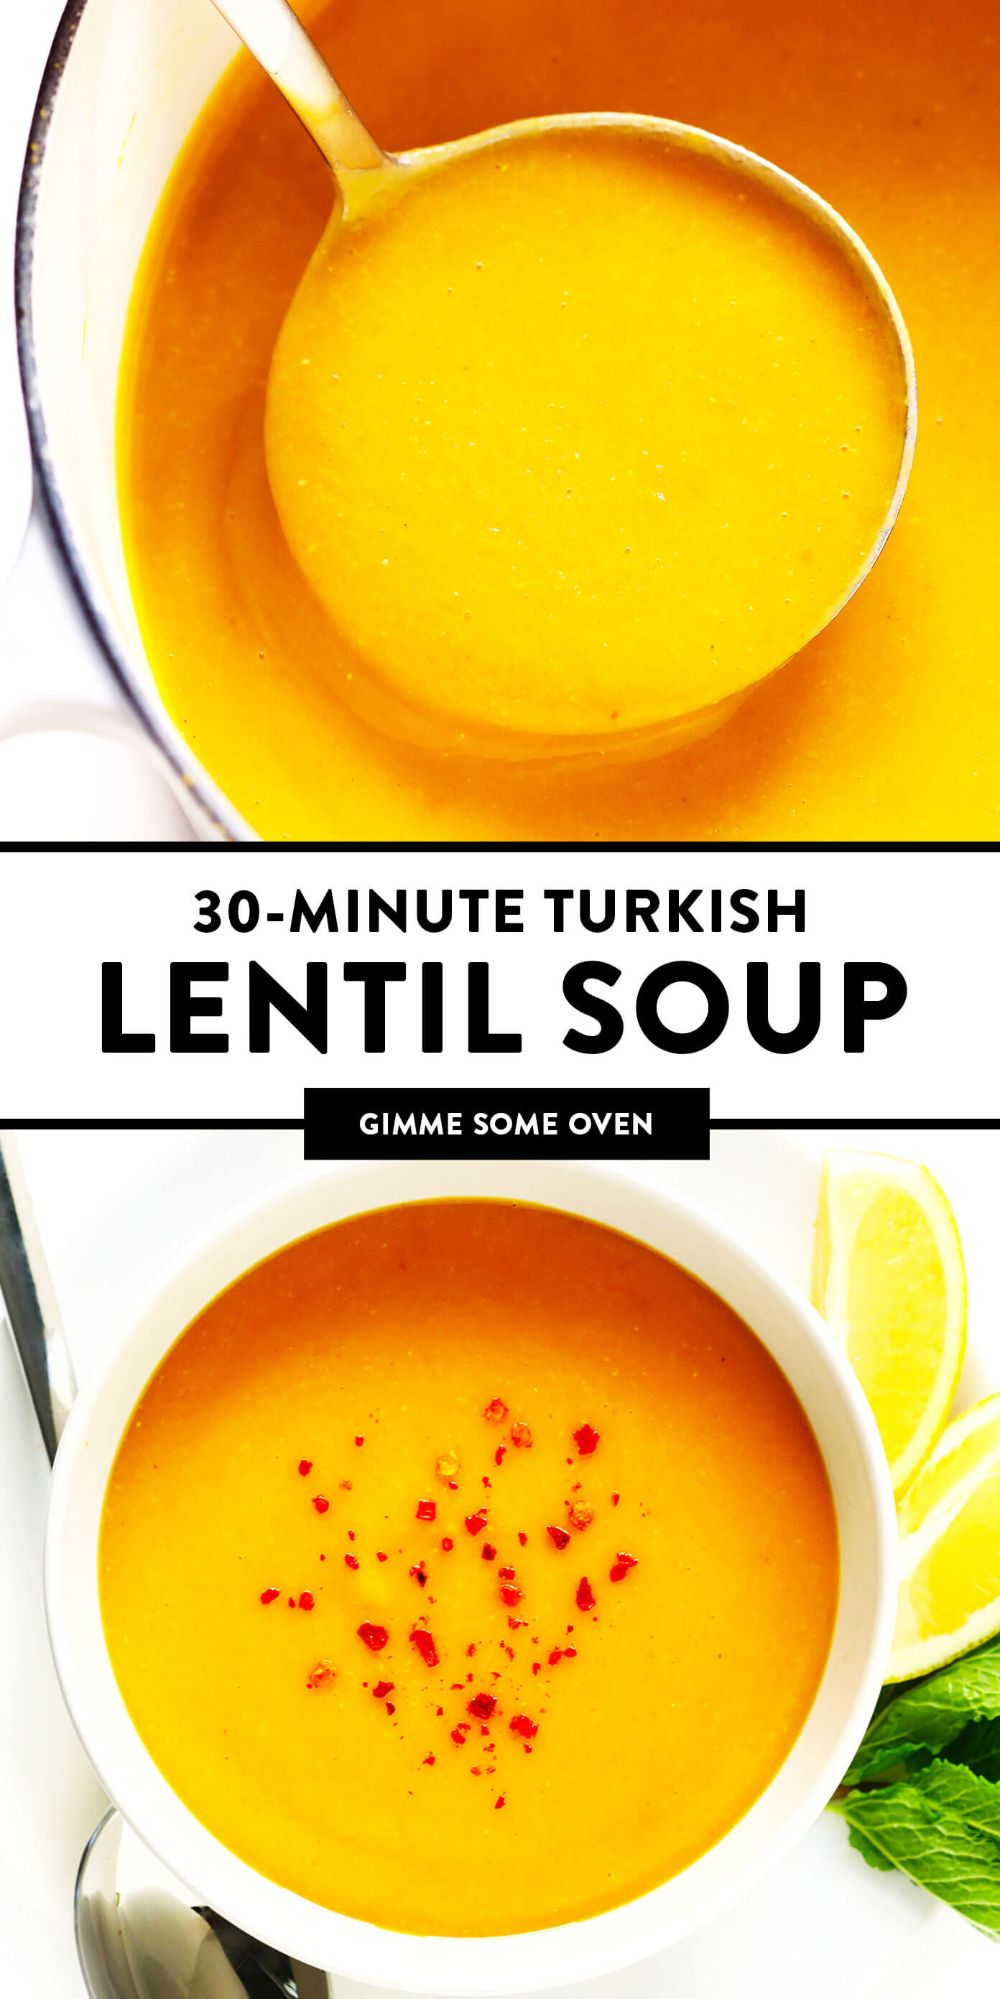 This Turkish Lentil Soup recipe is easy to make in just 30 minutes, lightly seasoned with cumin, lemon and fresh mint, and tastes delicious as a healthy appetizer or main dish. | gimmesomeoven.com #lentil #soup #healthy #turkish #vegetarian #vegan #glutenfree #dinner #mealprep